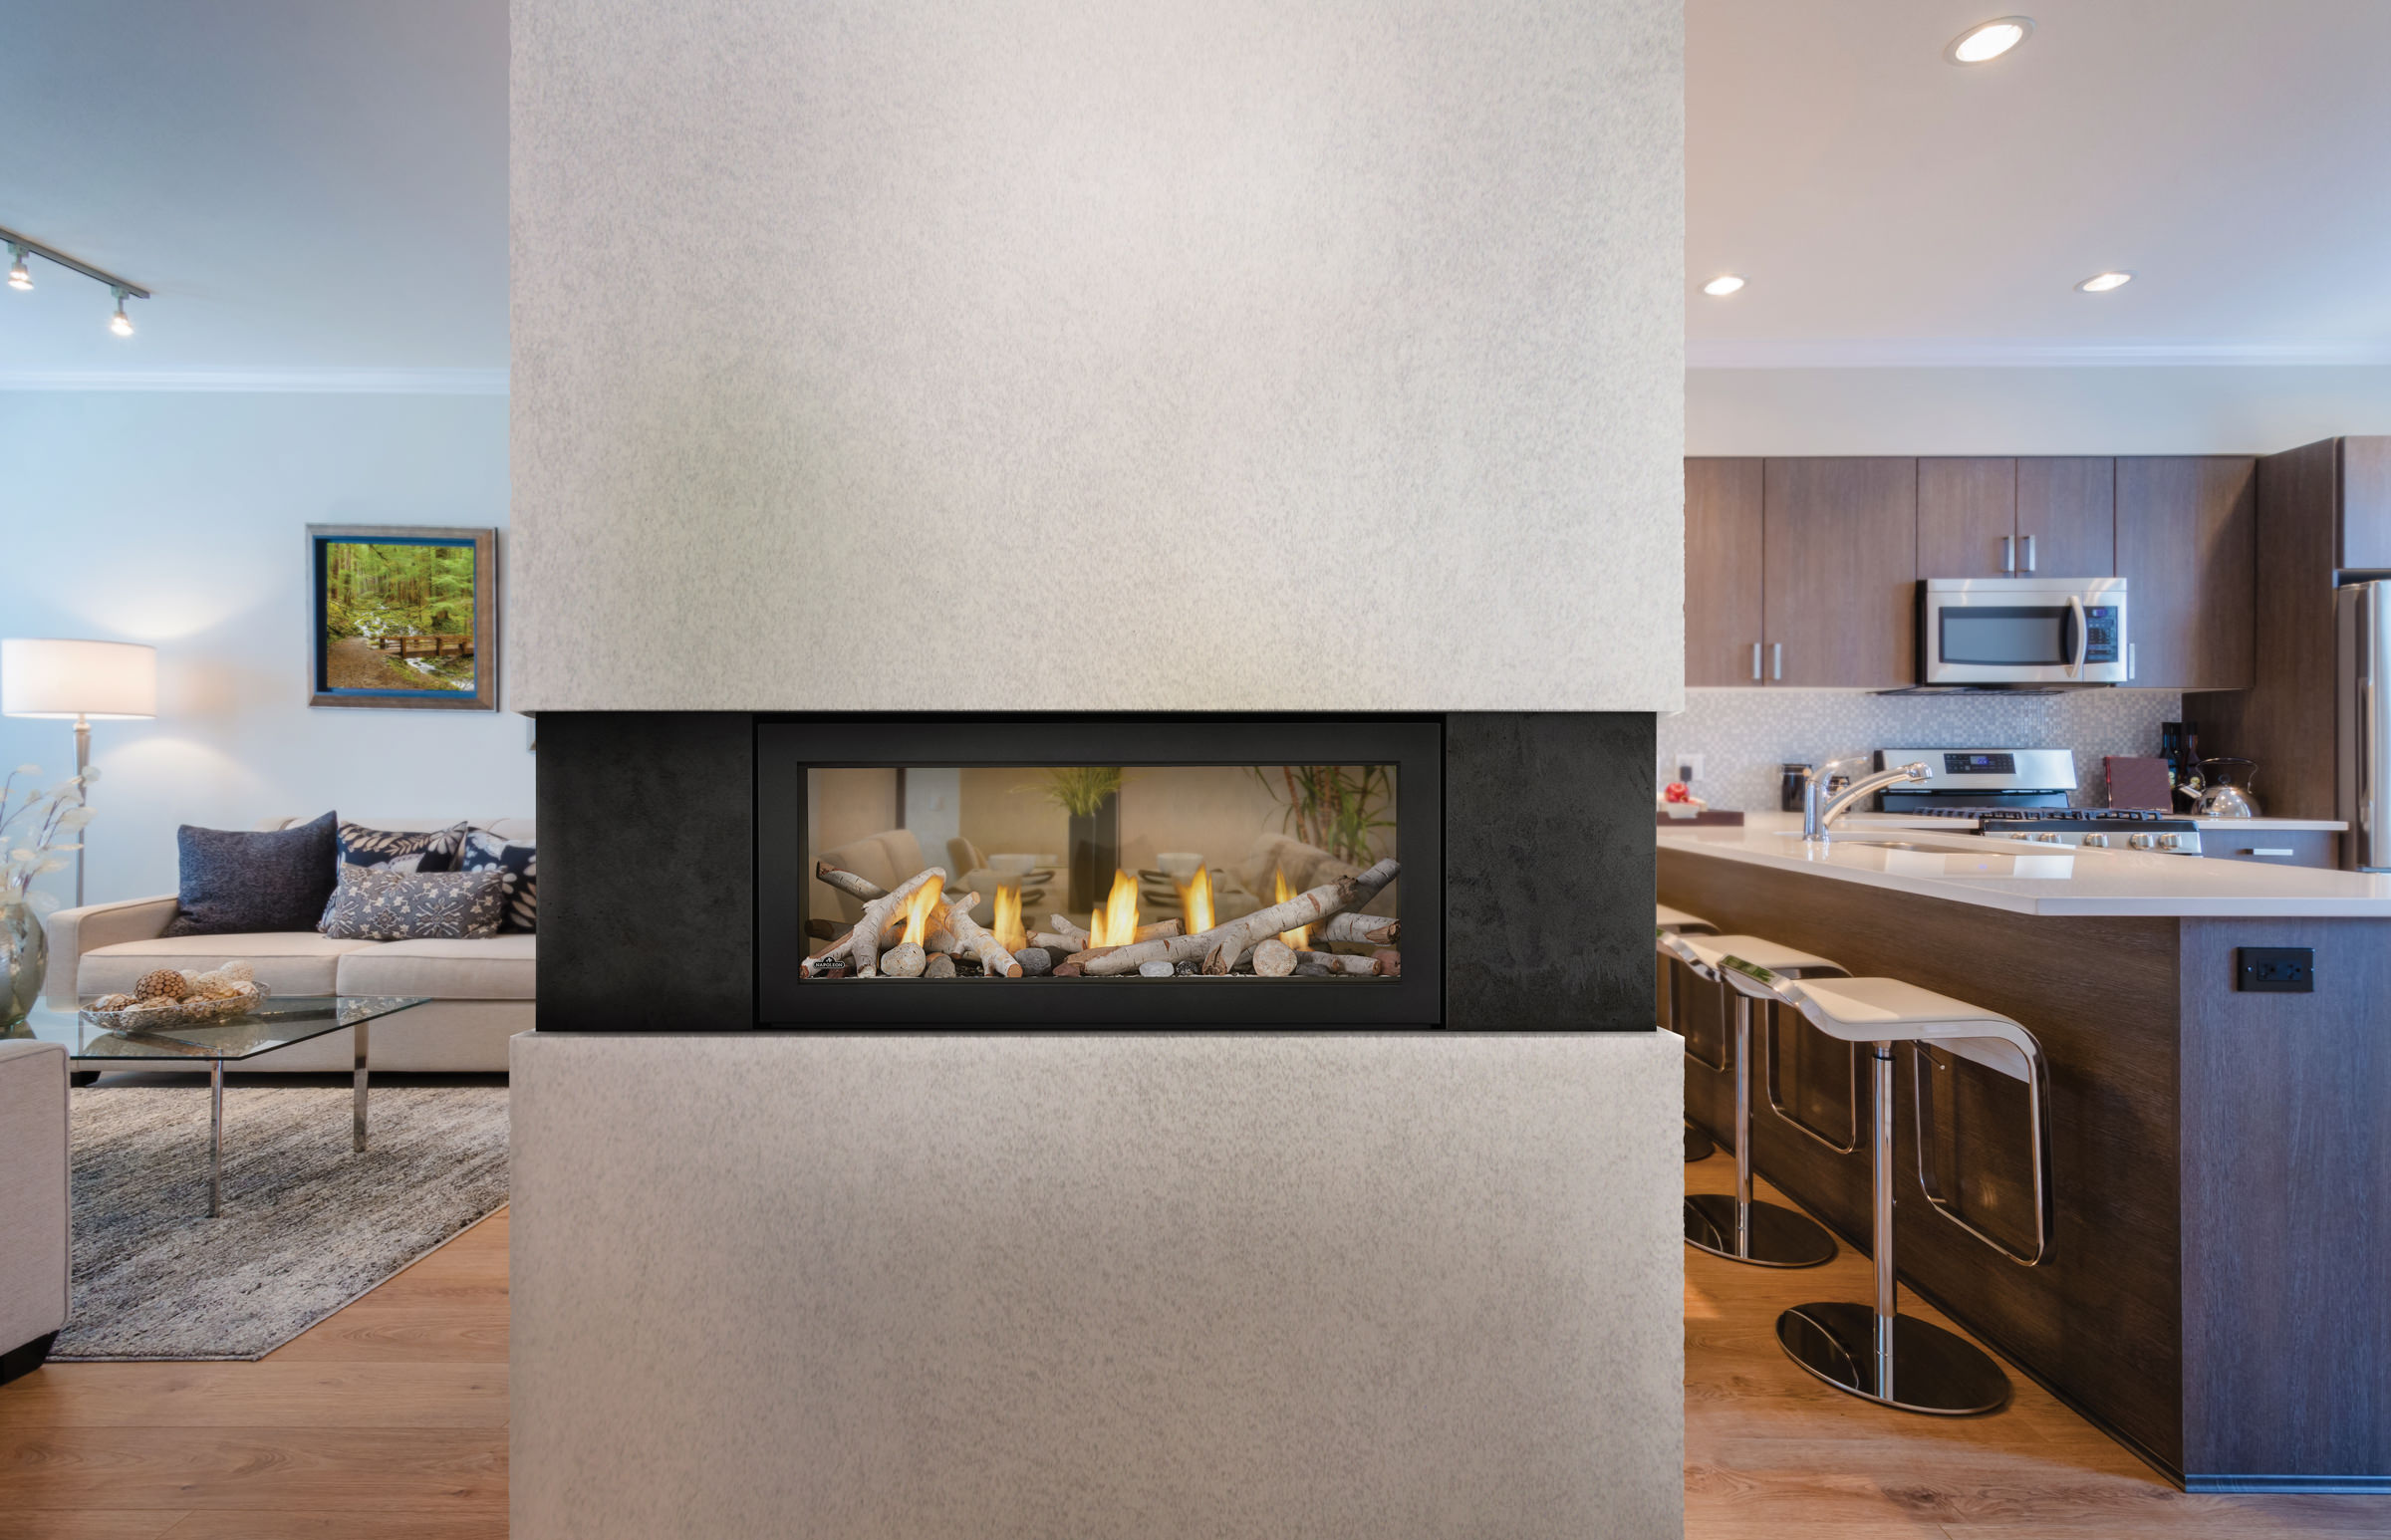 en fireplaces you gas stoves direct your vent products can traditional home wood a inserts learn fireplace regency into incorporate how